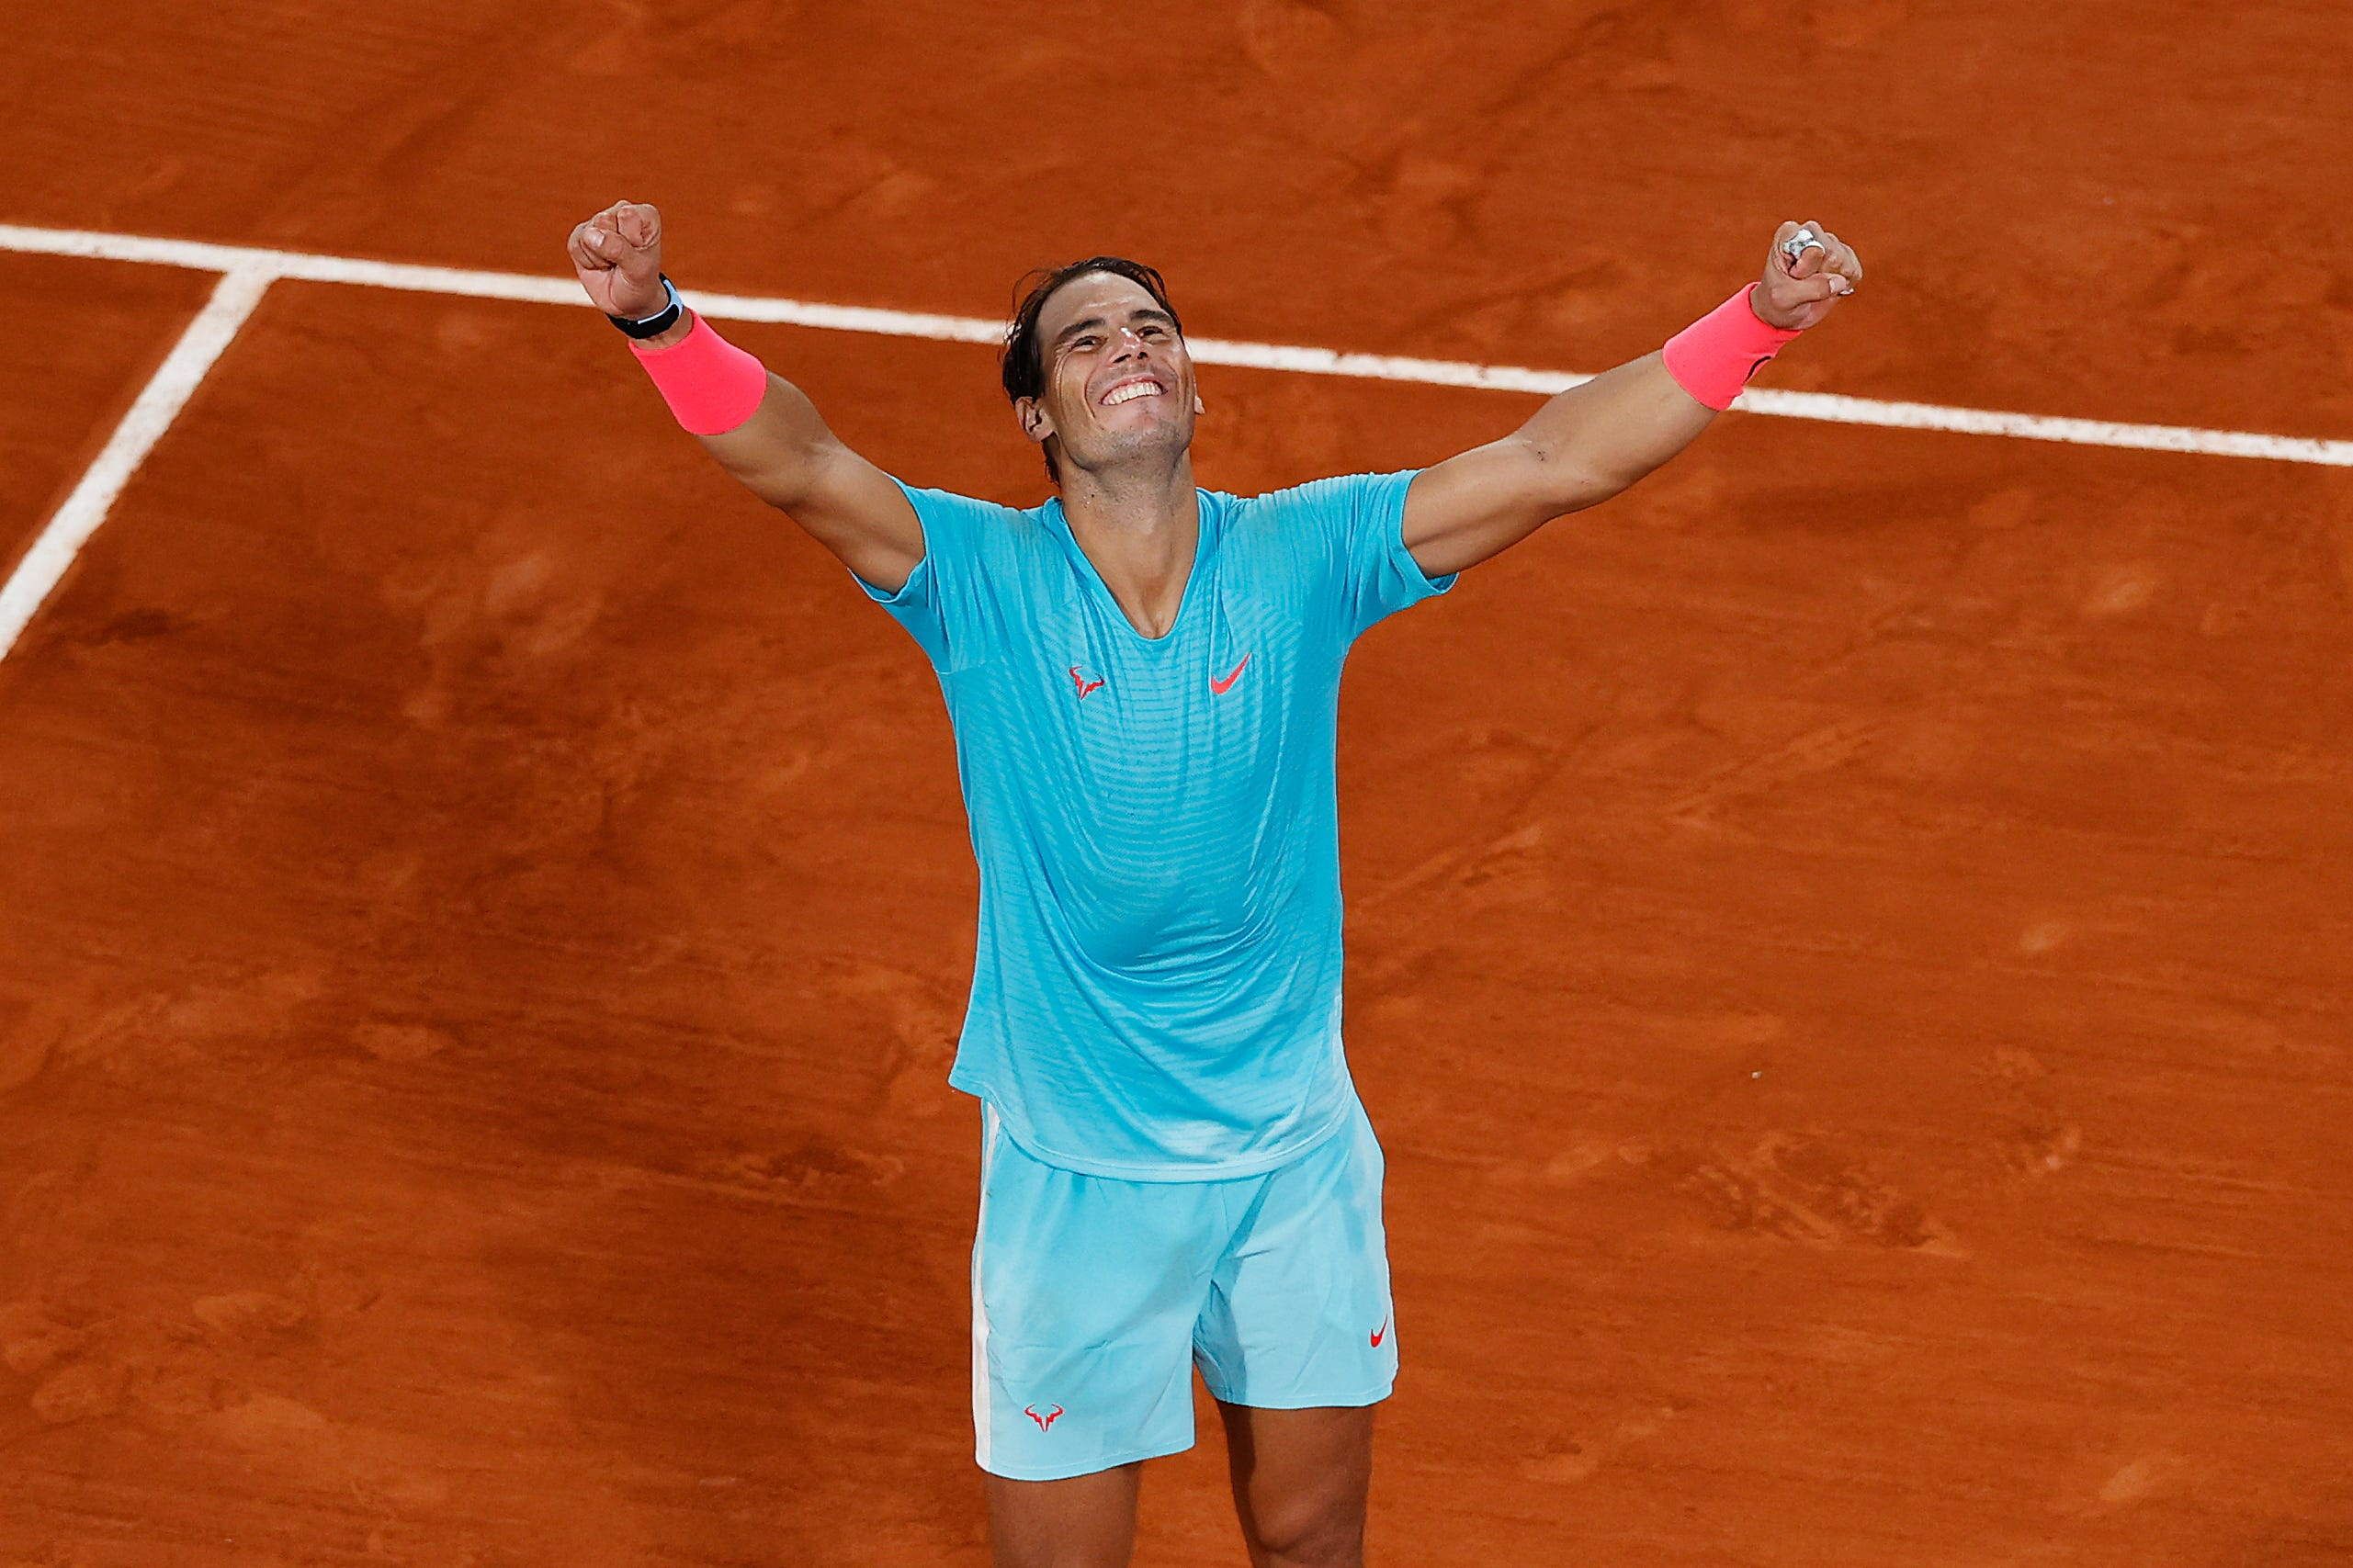 Rafael Nadal Wins French Open Ties Roger Federer With Titles